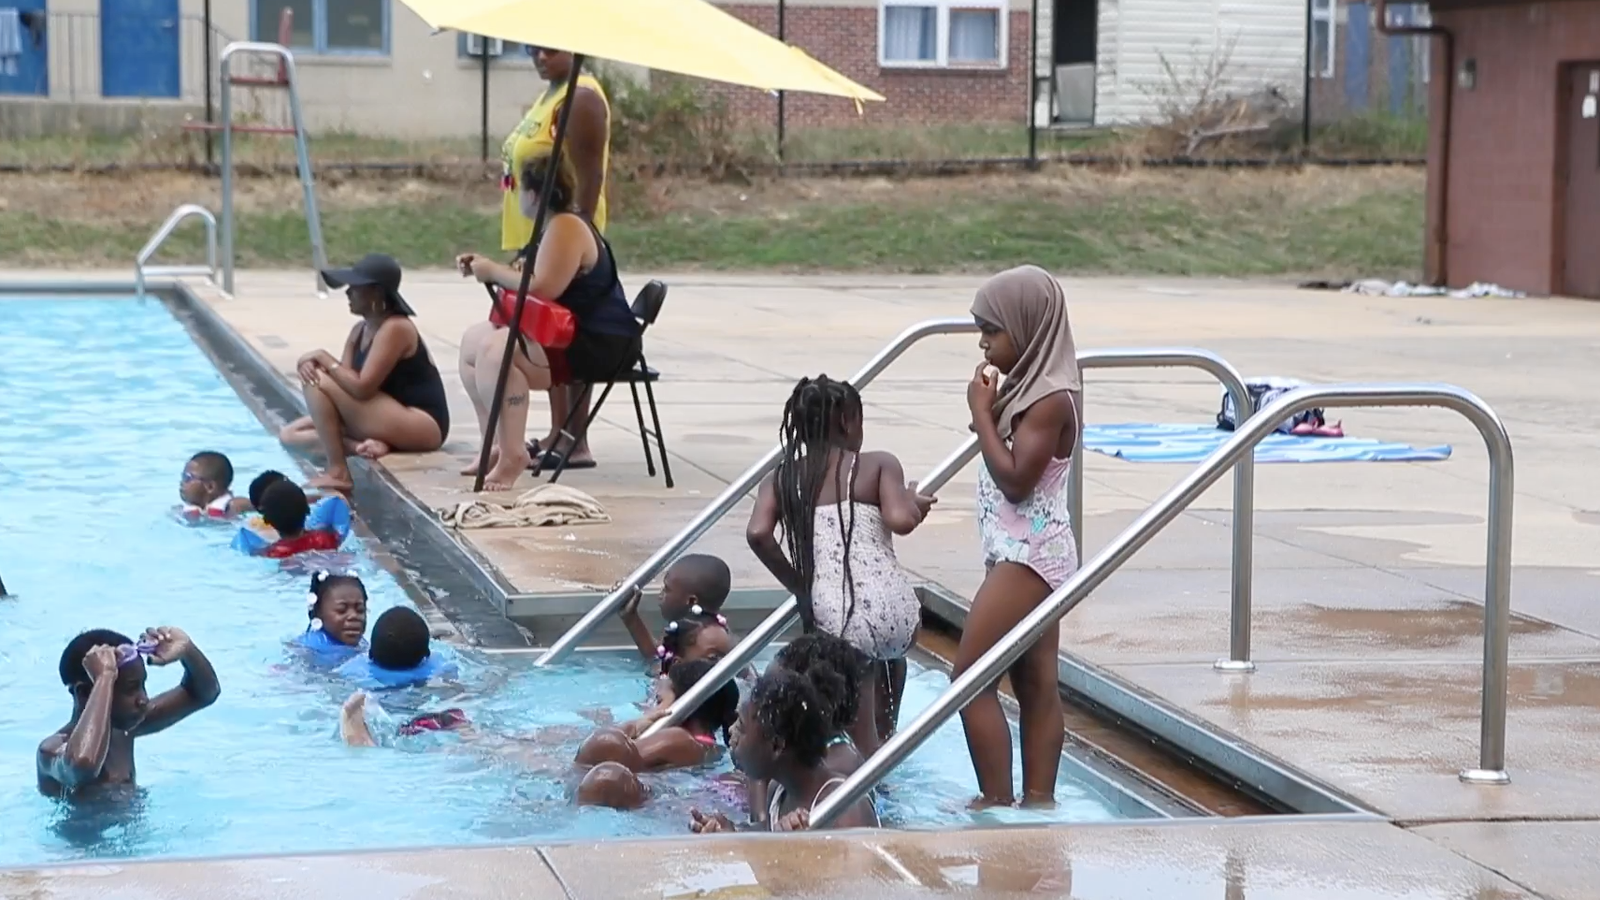 Muslims Kicked Out Of Delaware Pool For 39 Wearing Cotton 39